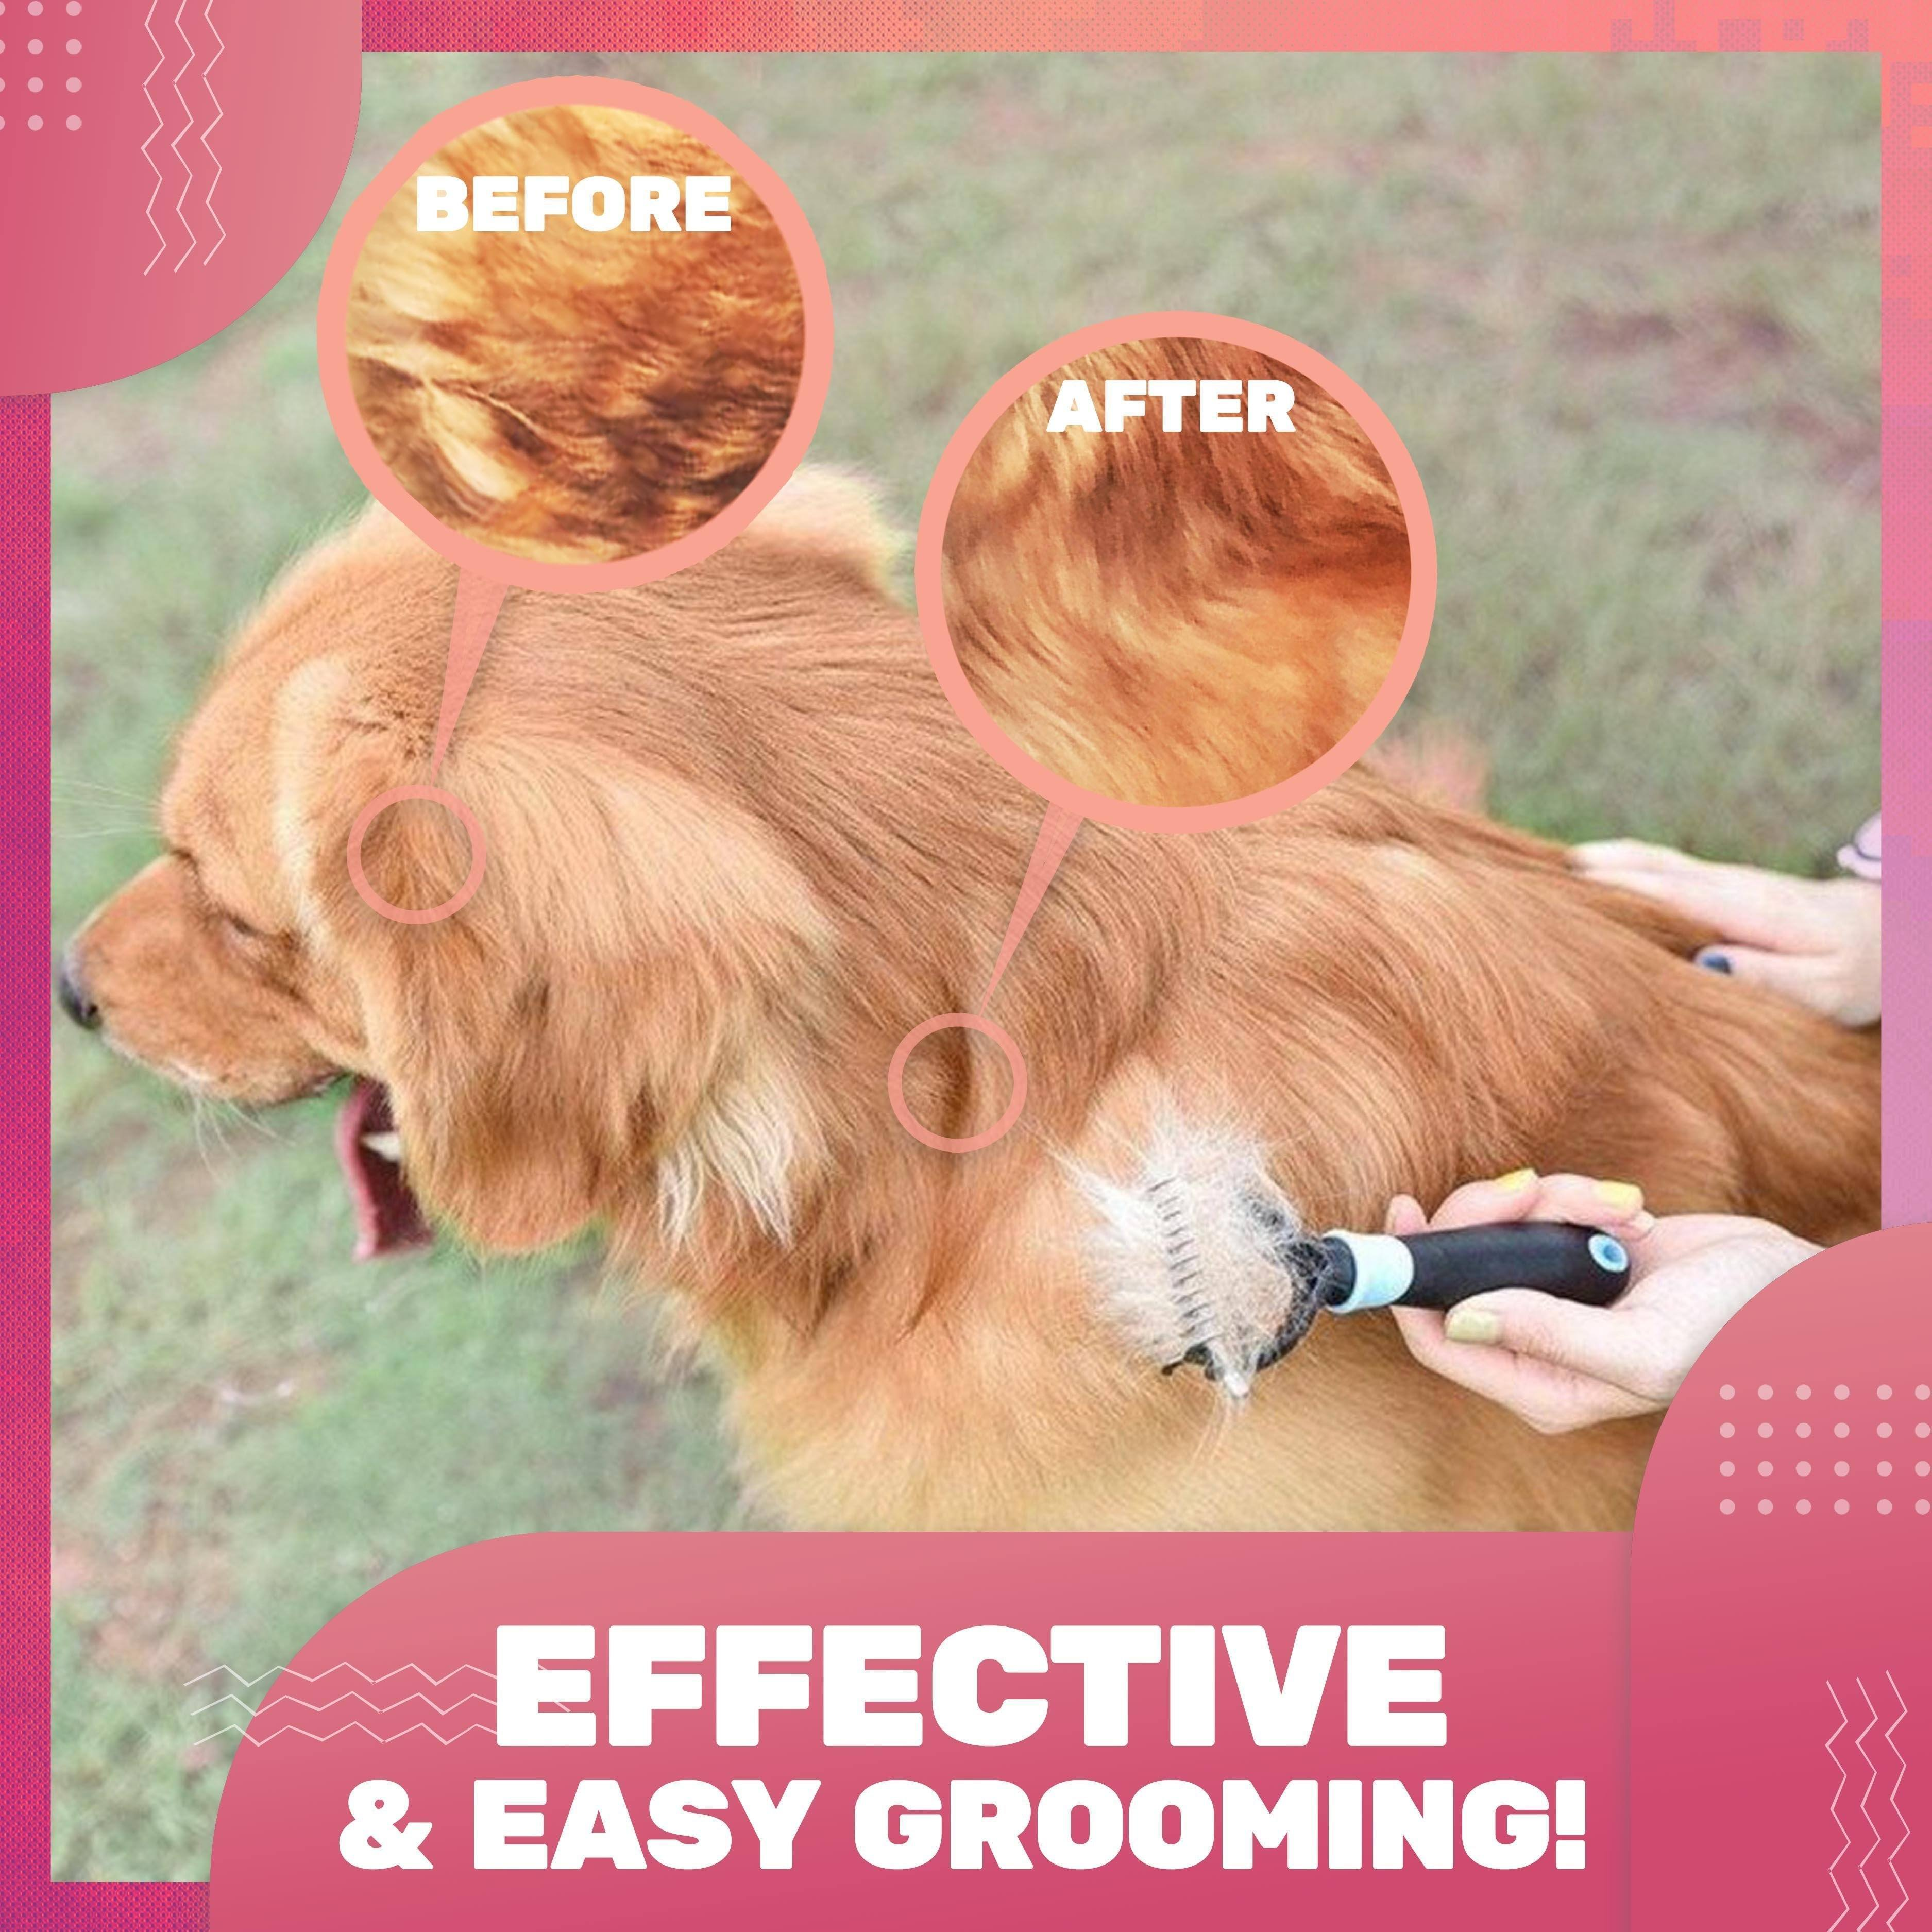 All-in-1 Pet Grooming Comb